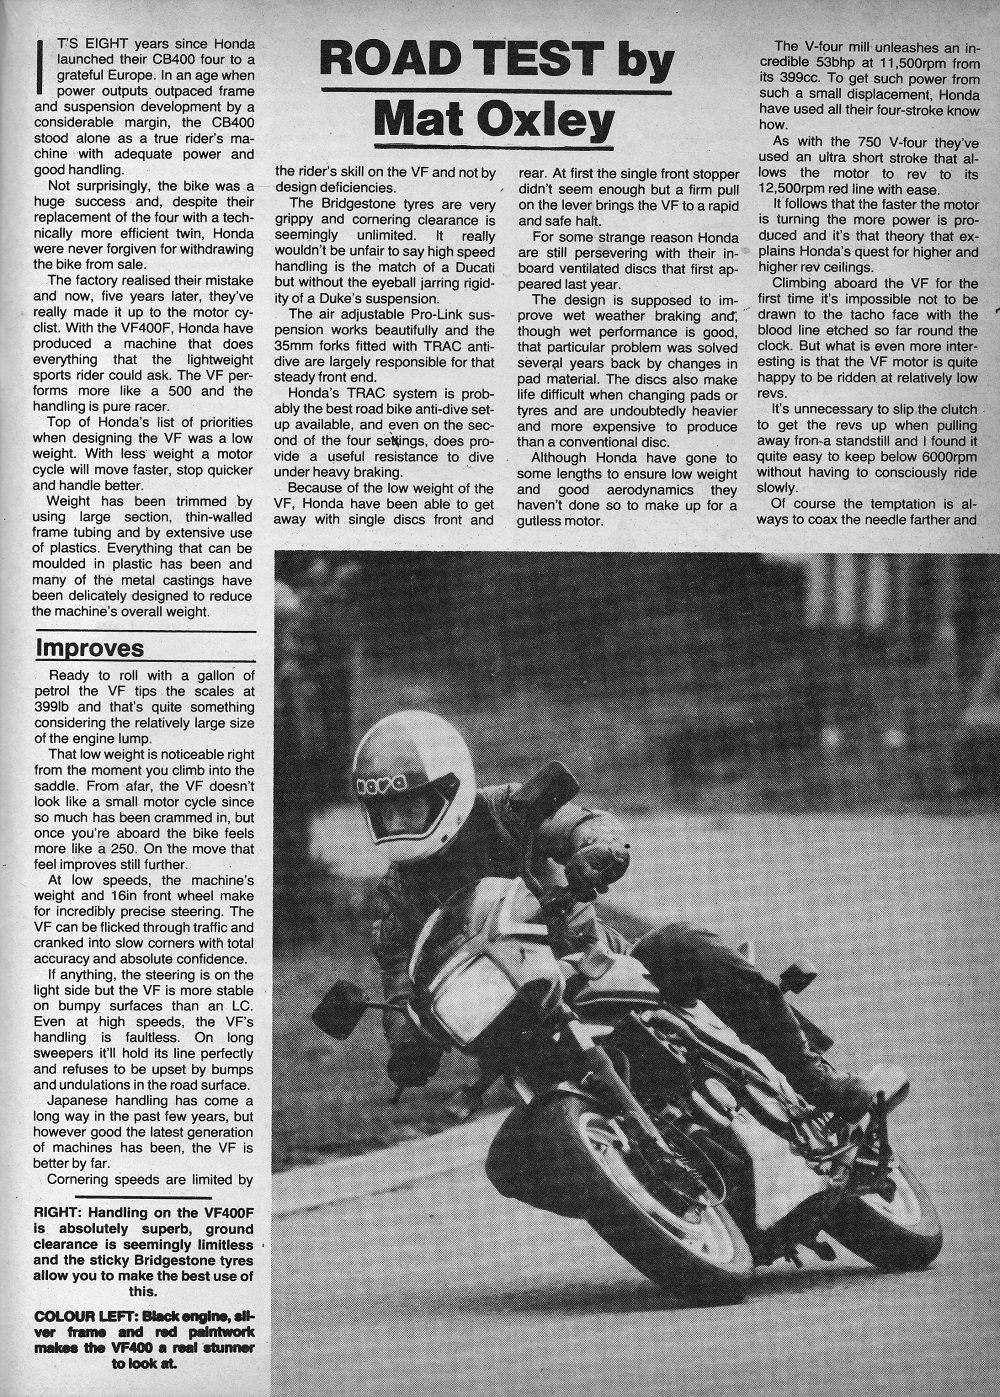 1983 Honda VF400F road test.3.jpg